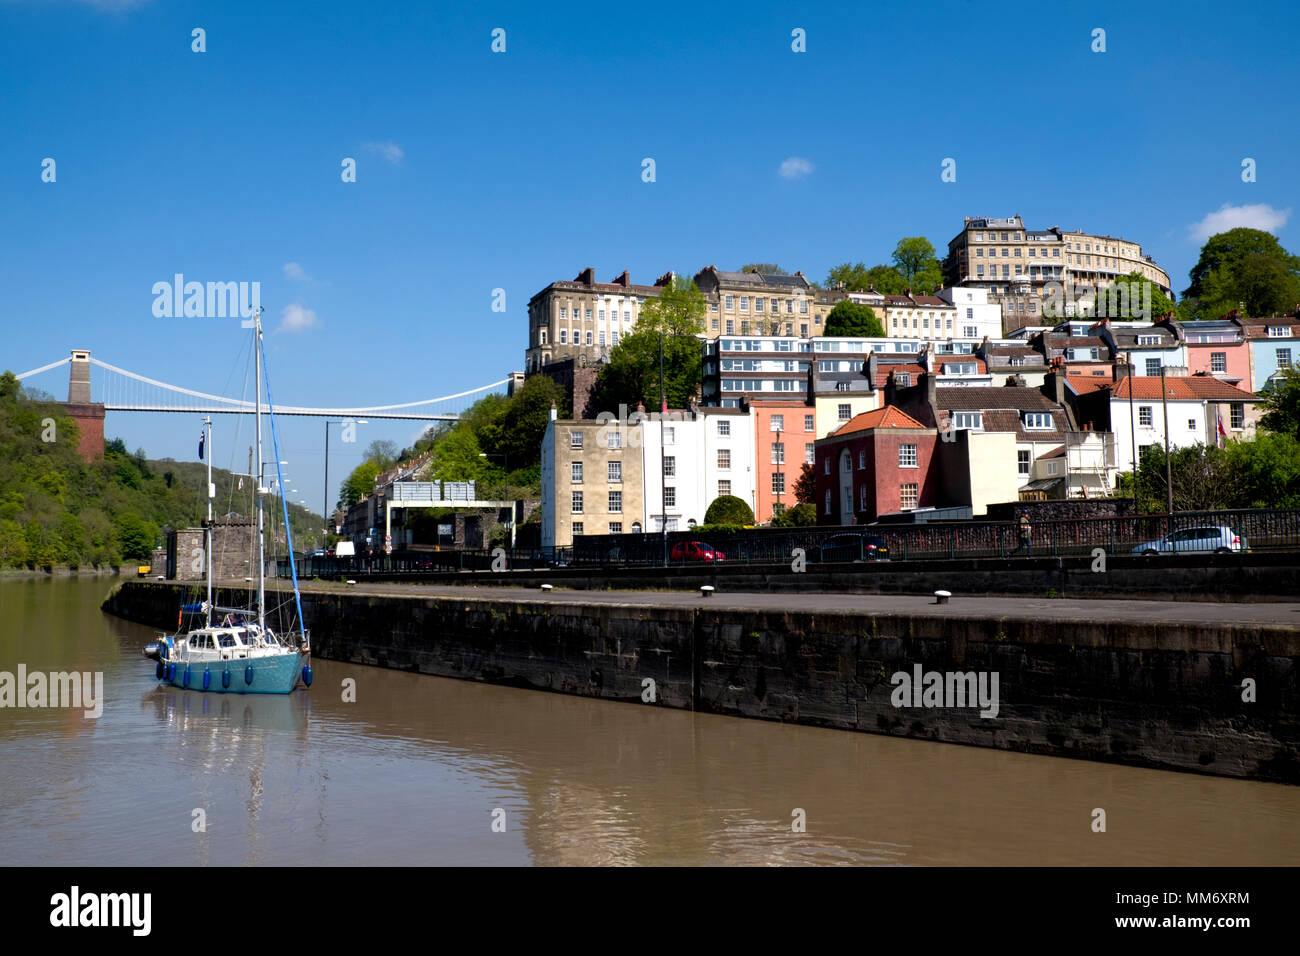 Passing underneath Clifton Suspension Bridge, a blue sailing boat motors past the Clifton and Hotwells residential streets towards Bristol docks. - Stock Image